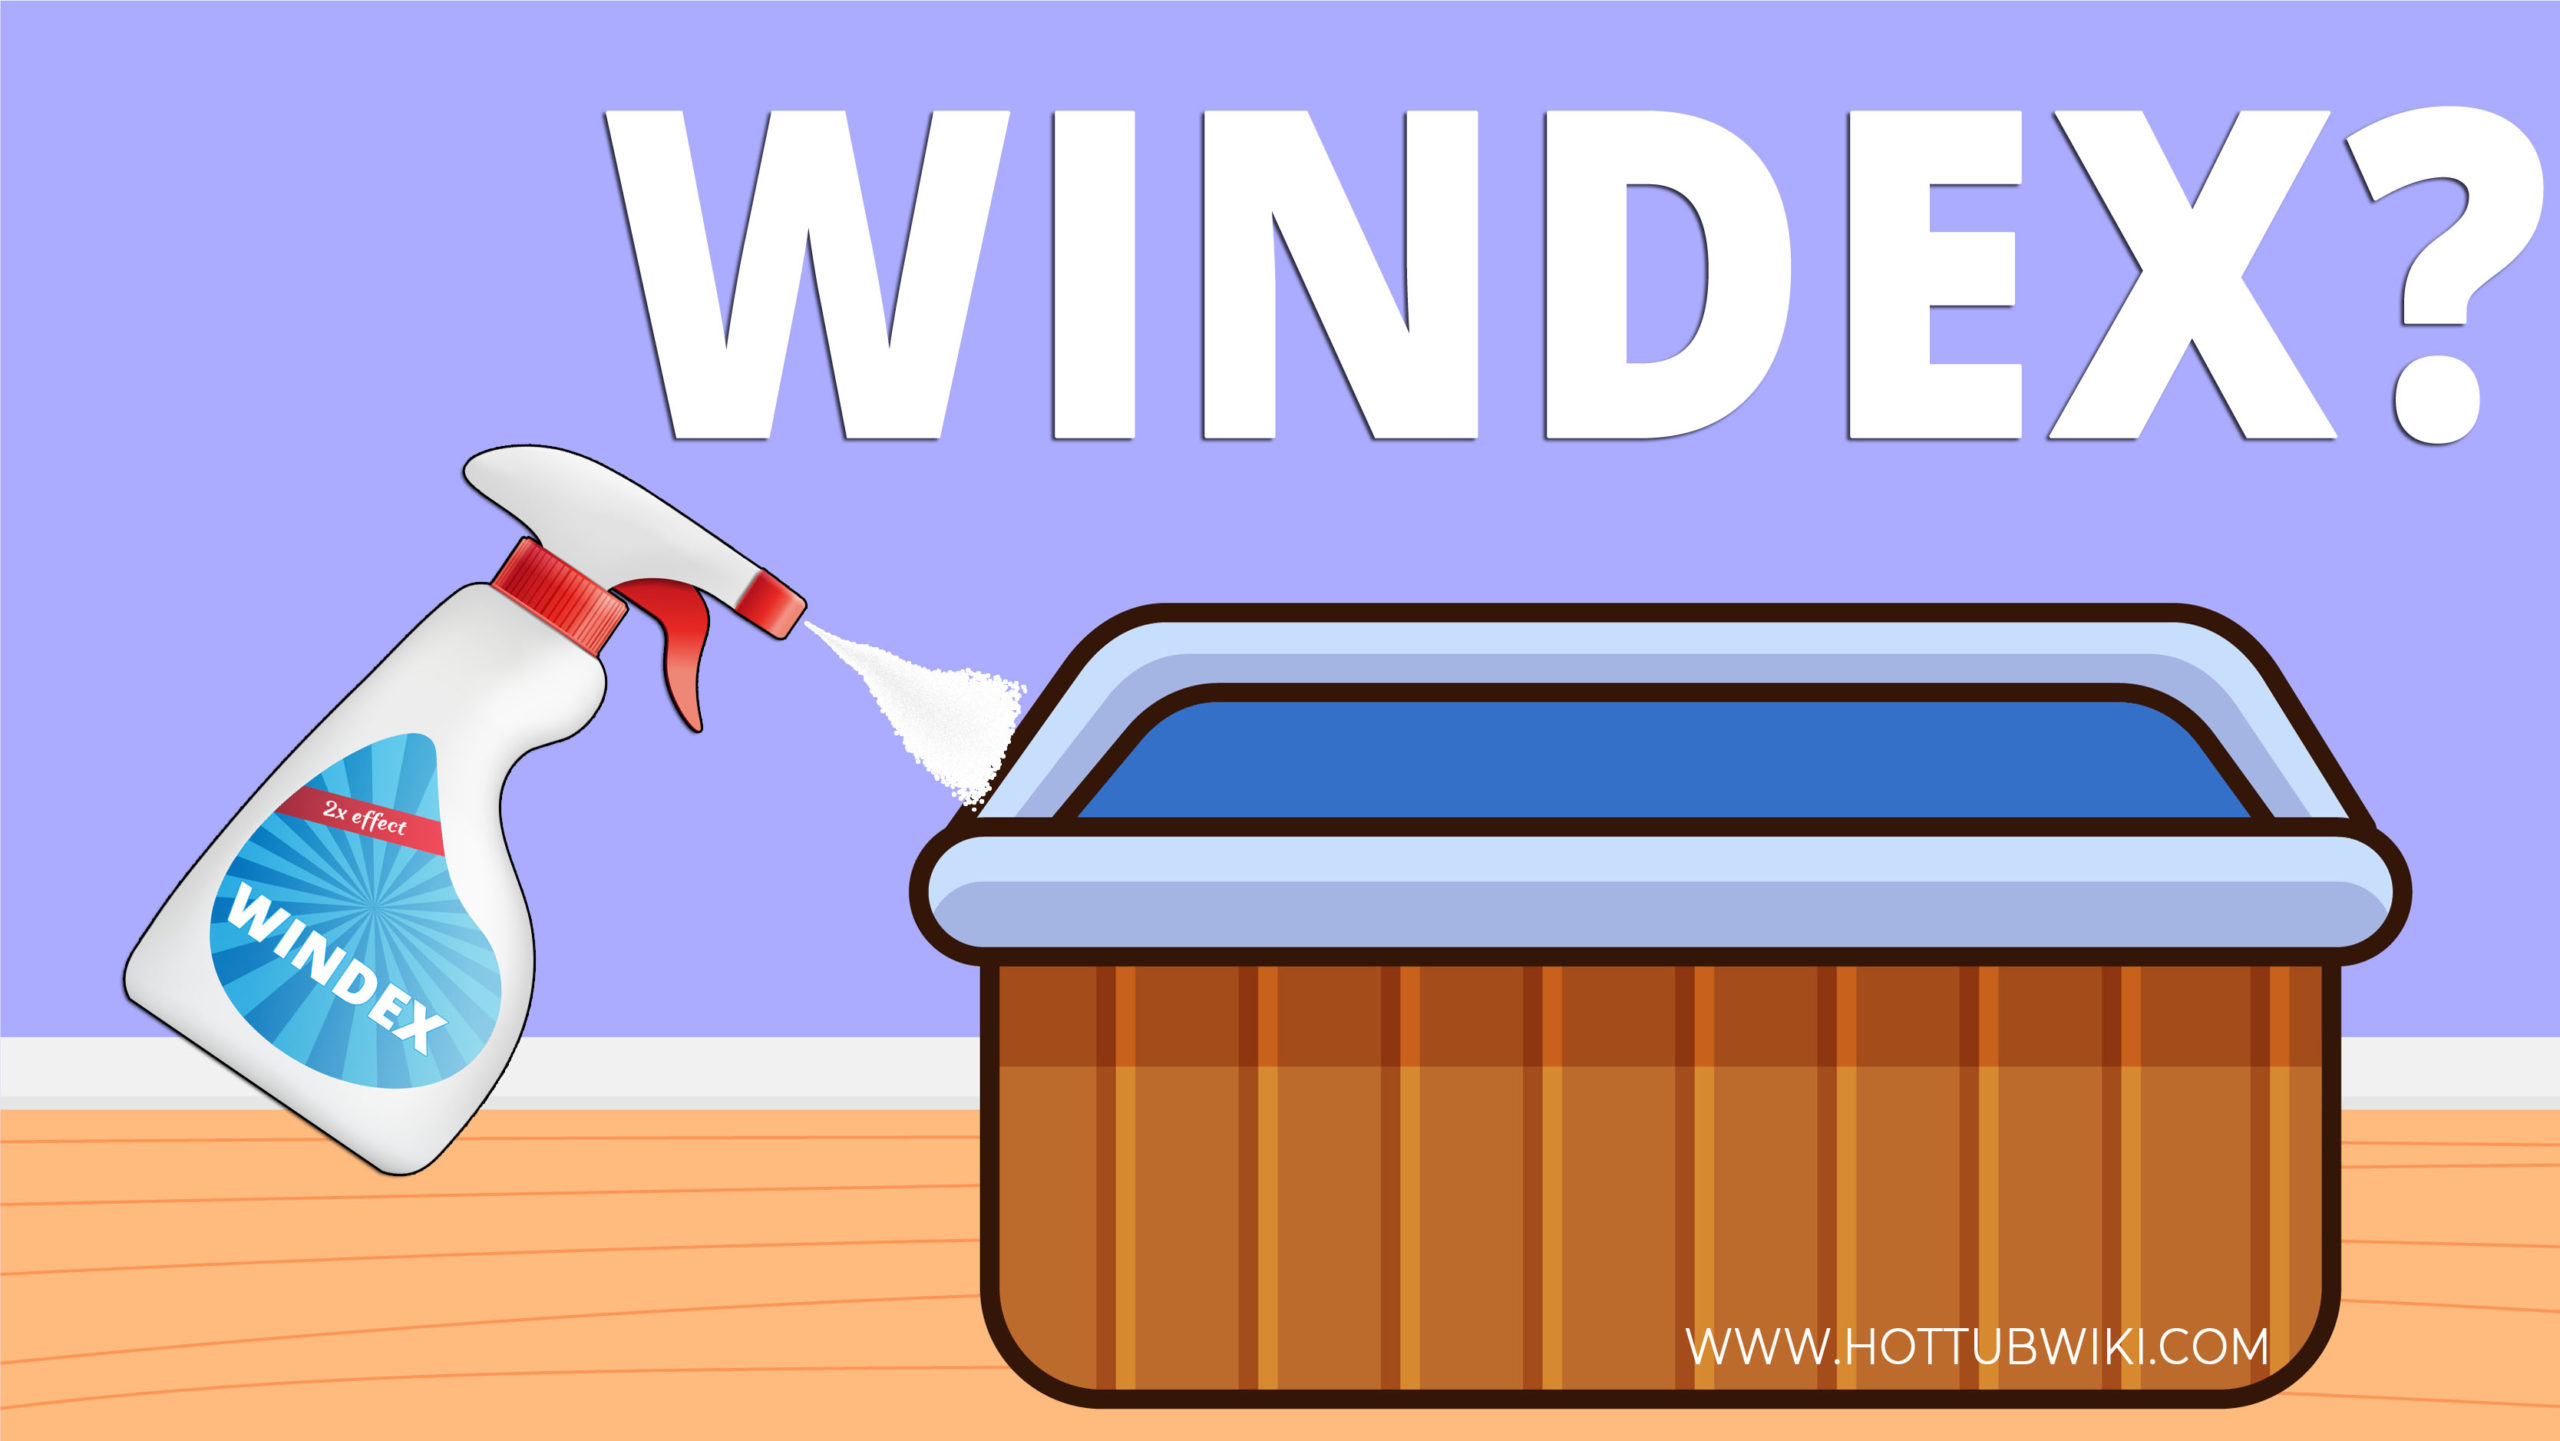 Can You Use Windex to Clean a Hot Tub?